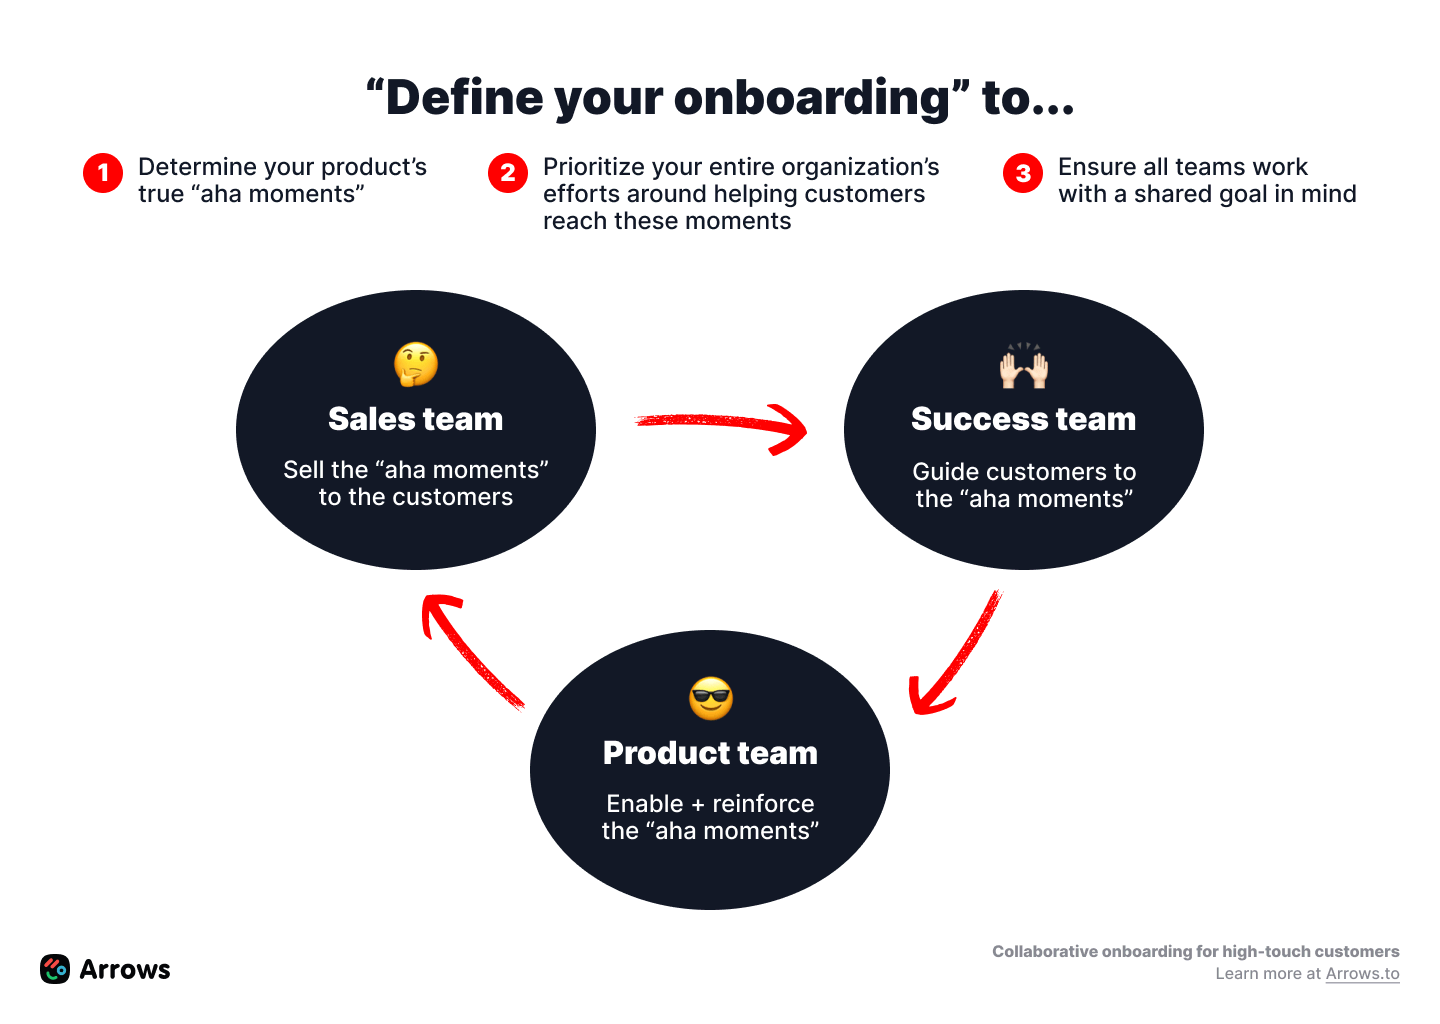 Define onboarding across all teams